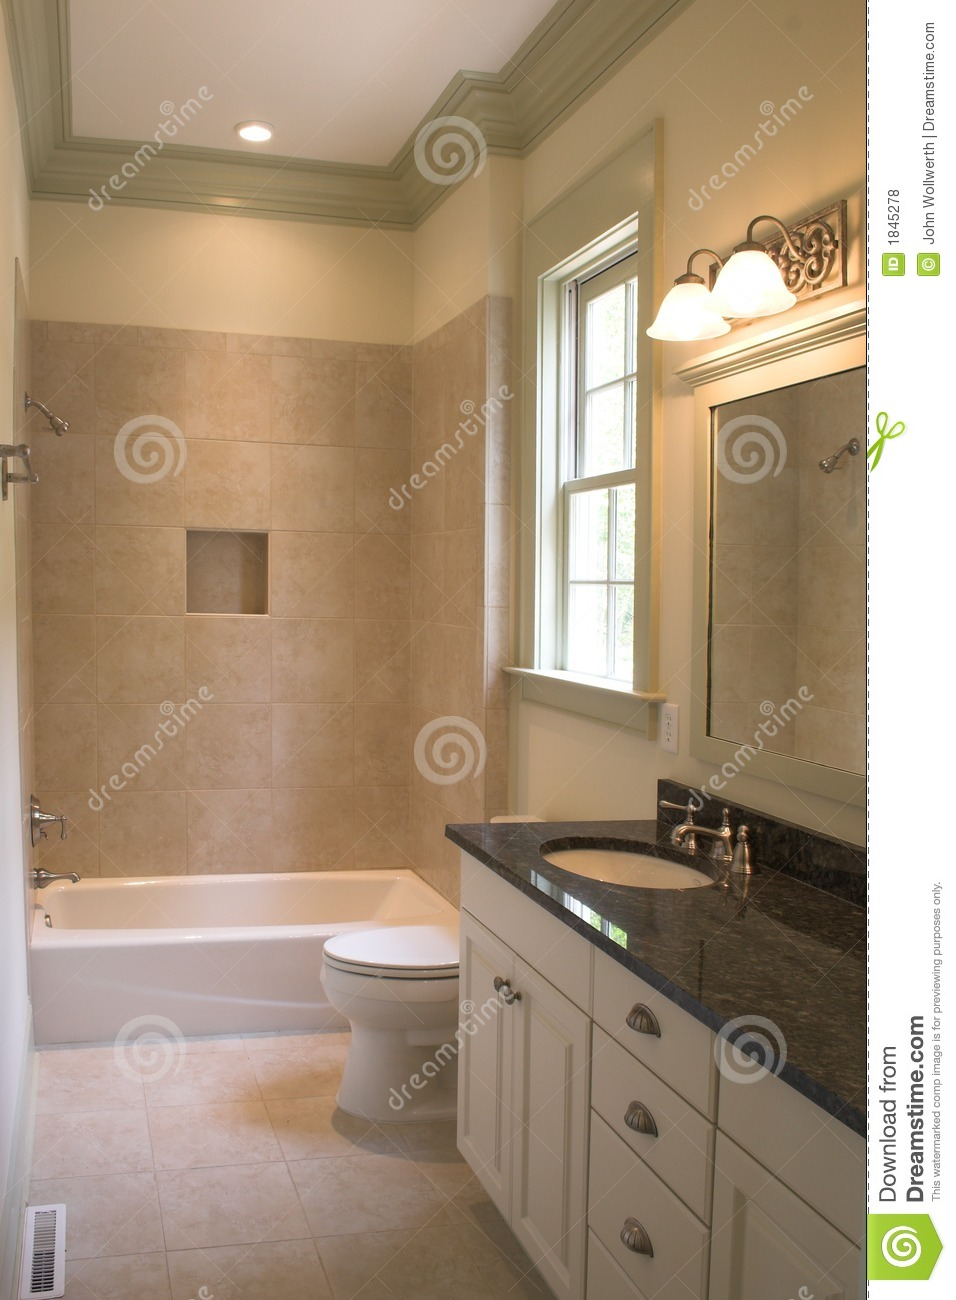 Simple Bathroom With Tile And Stone Royalty Free Stock